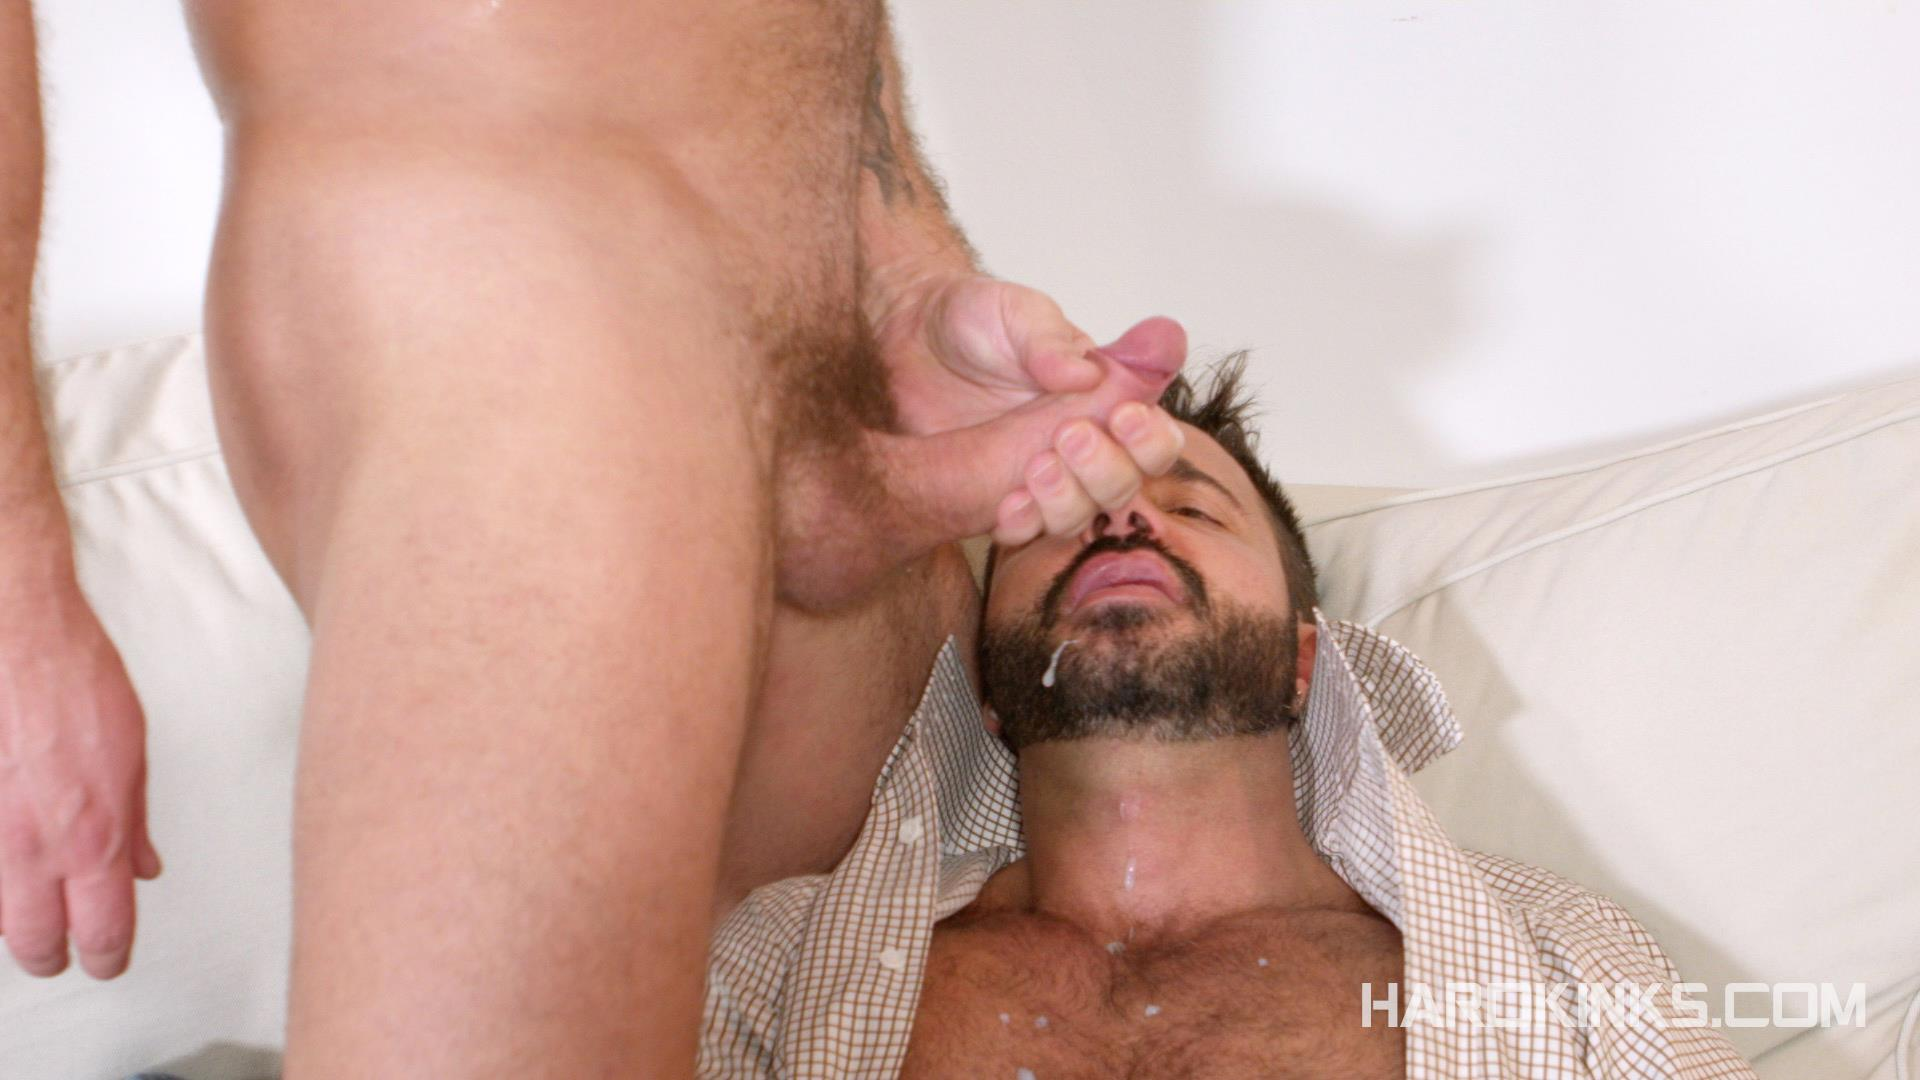 Hardkinks Jessy Ares and Martin Mazza Hairy Alpha Male Amateur Gay Porn 12 Hairy Muscle Alpha Male Dominates His Coworker